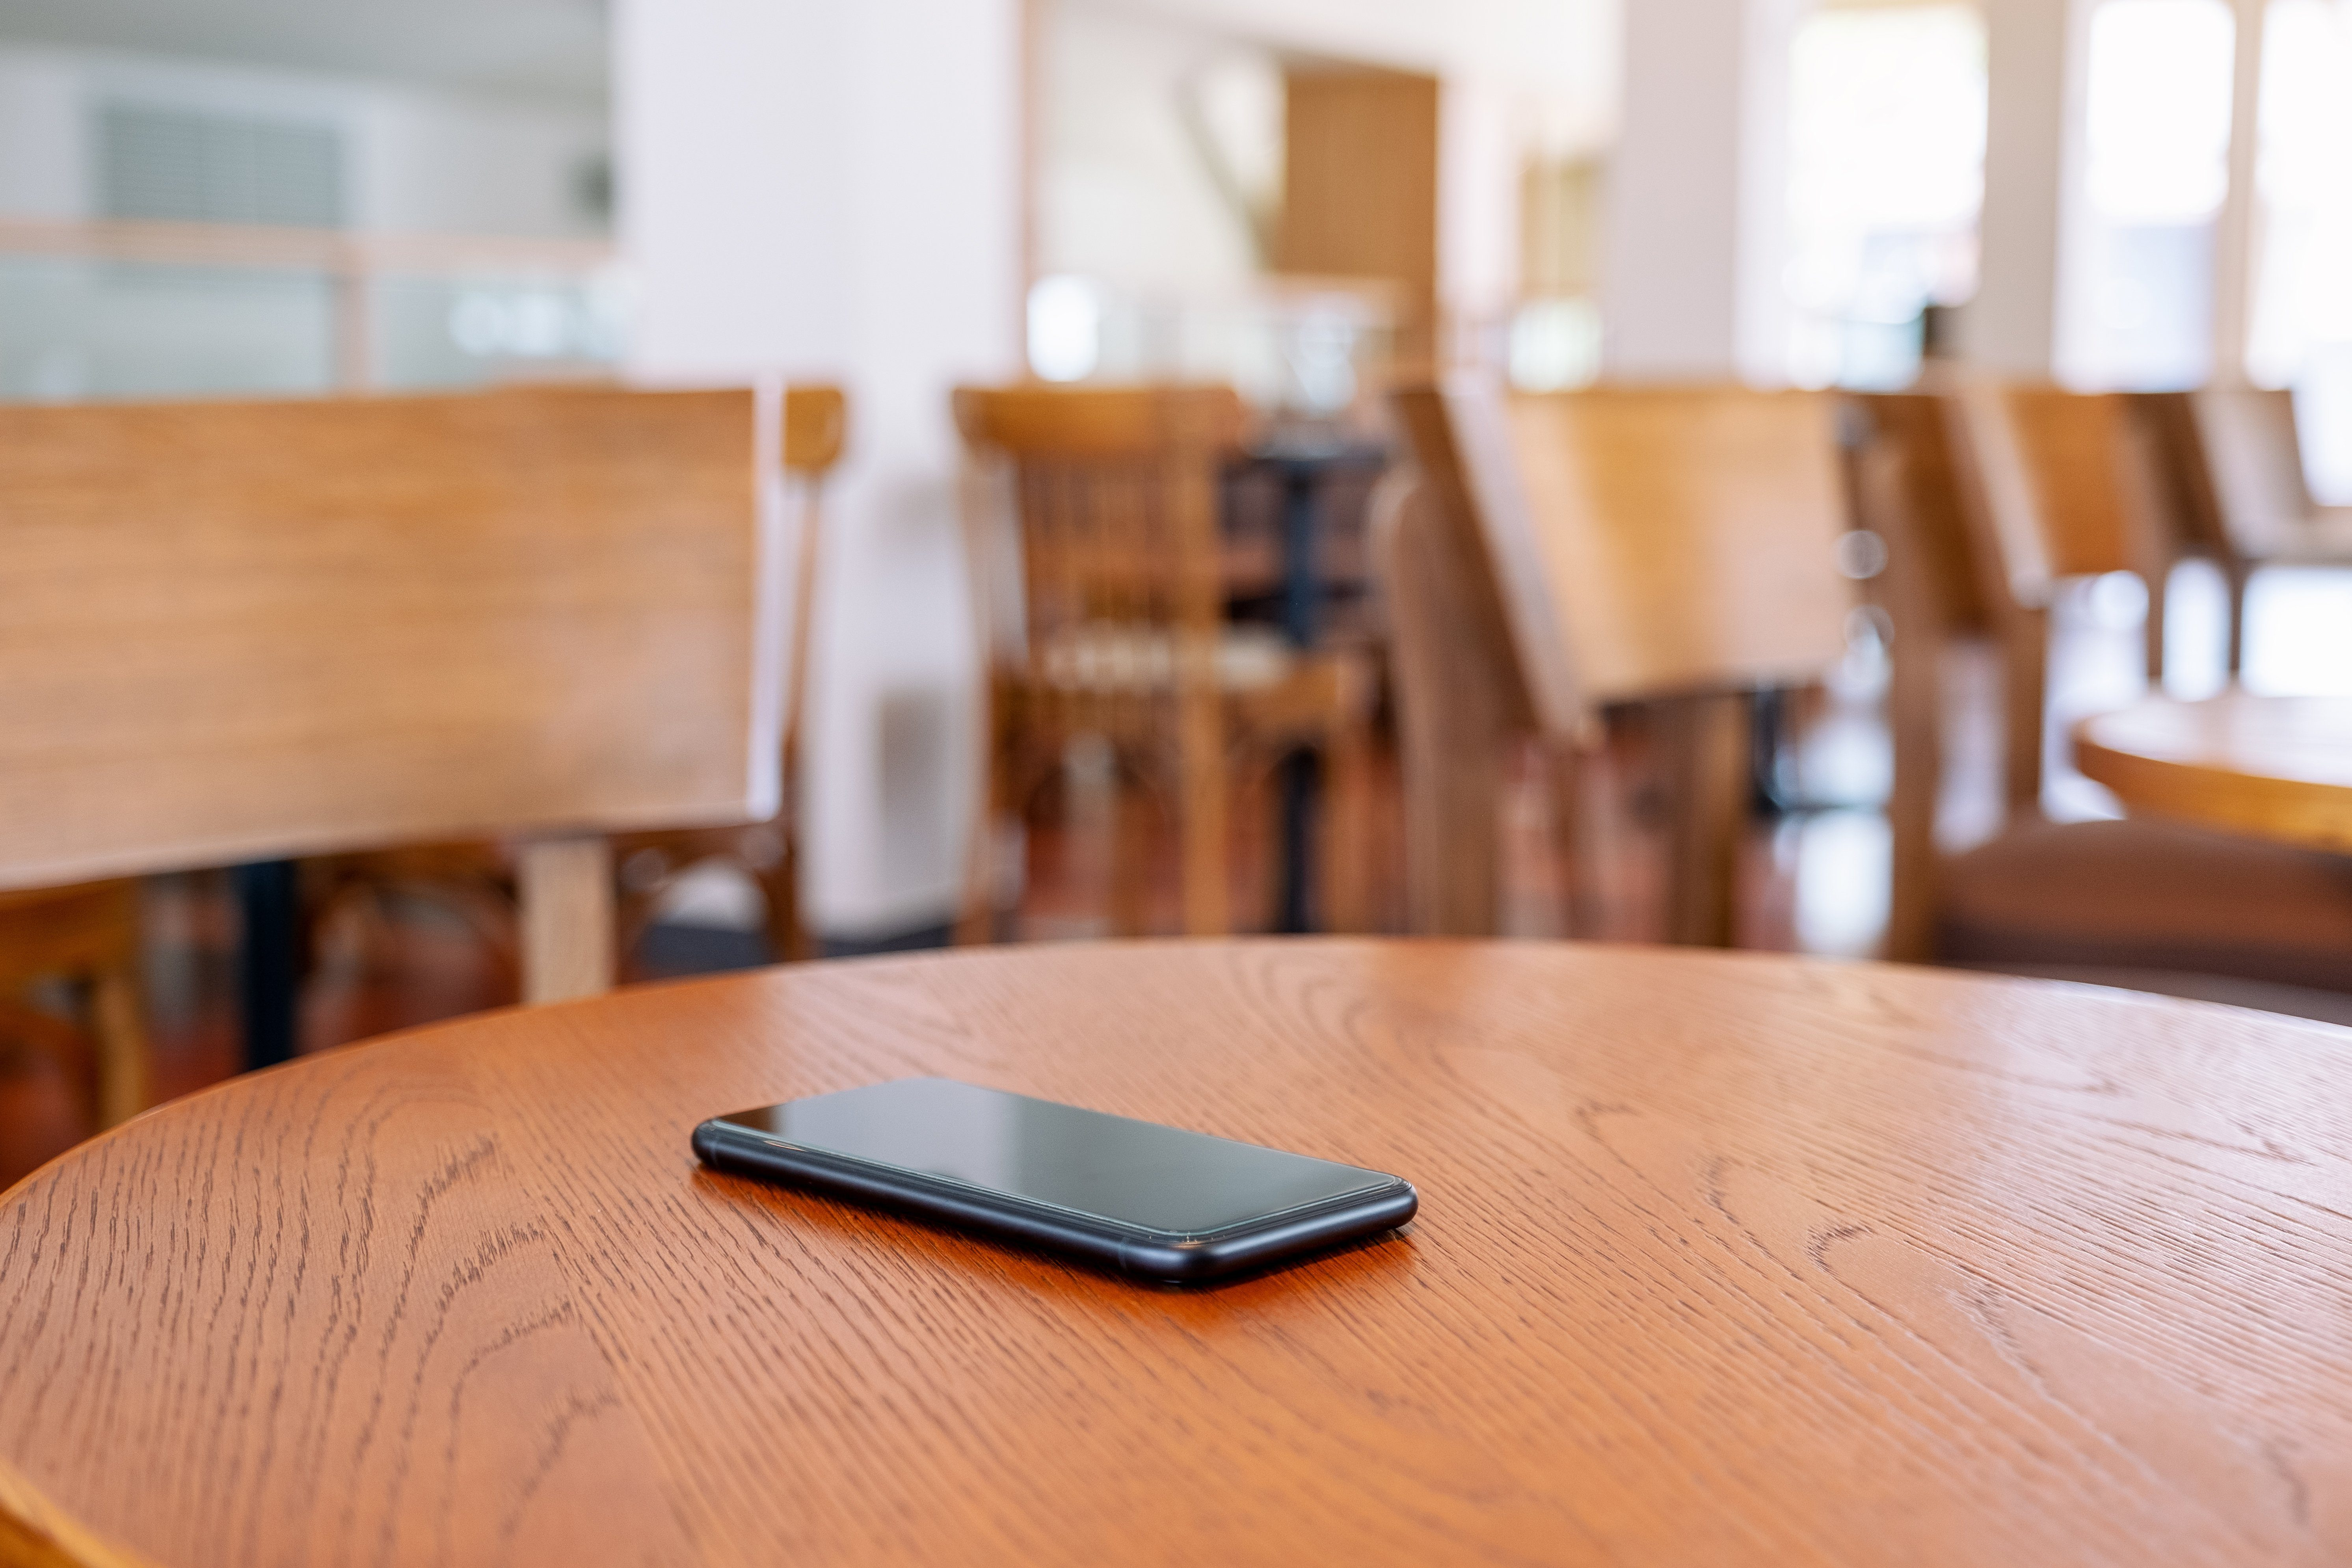 a black mobile phone on the table